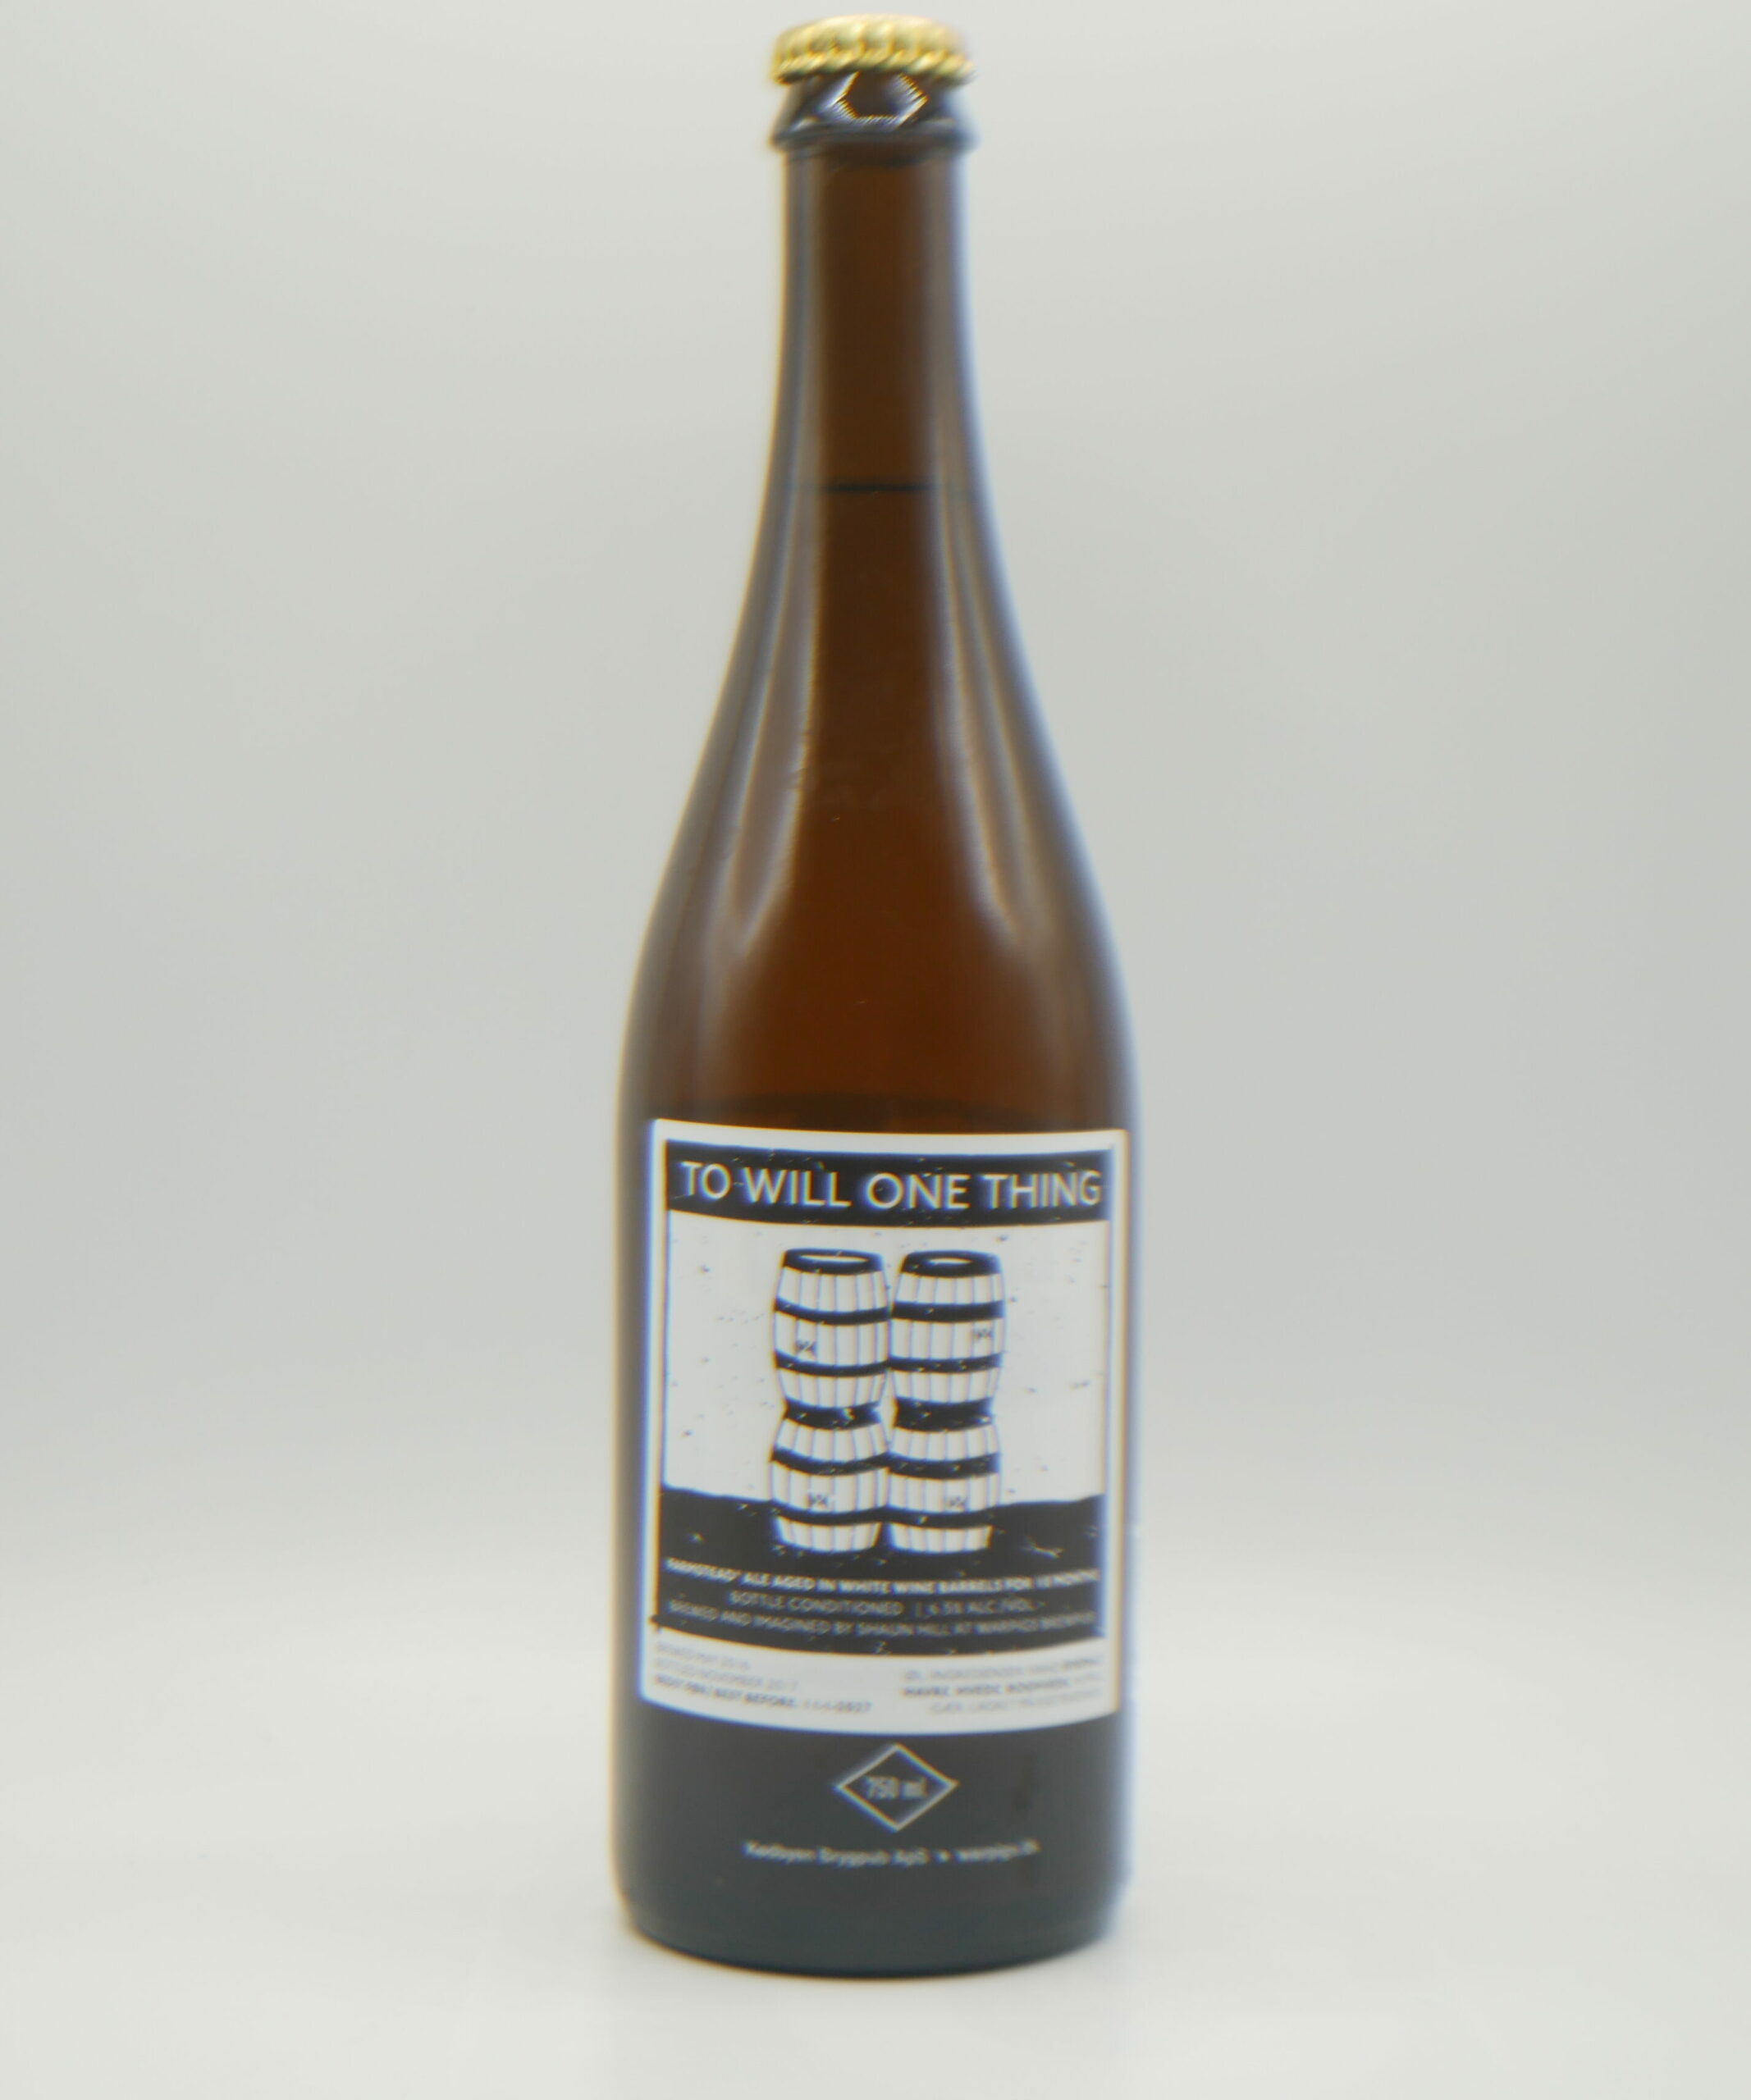 Image To will one thing (Collab hill farmstead)sais